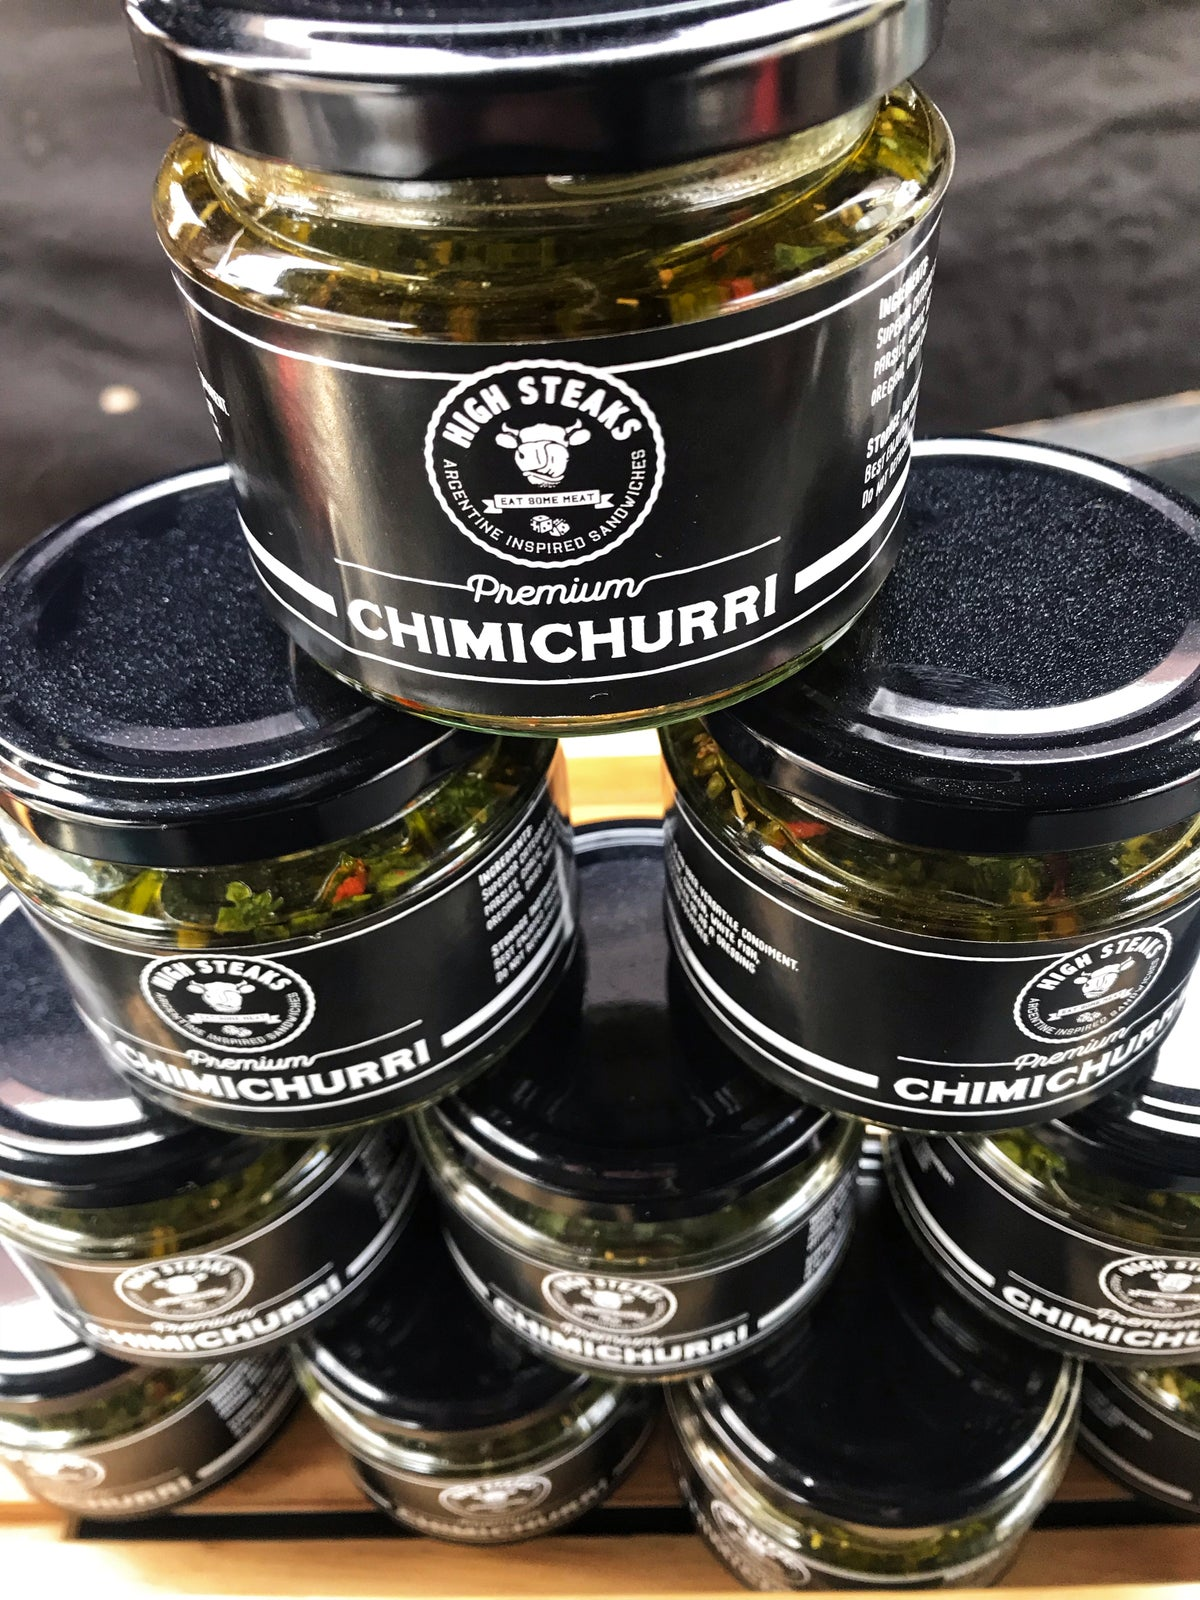 High Steaks Chimichurri